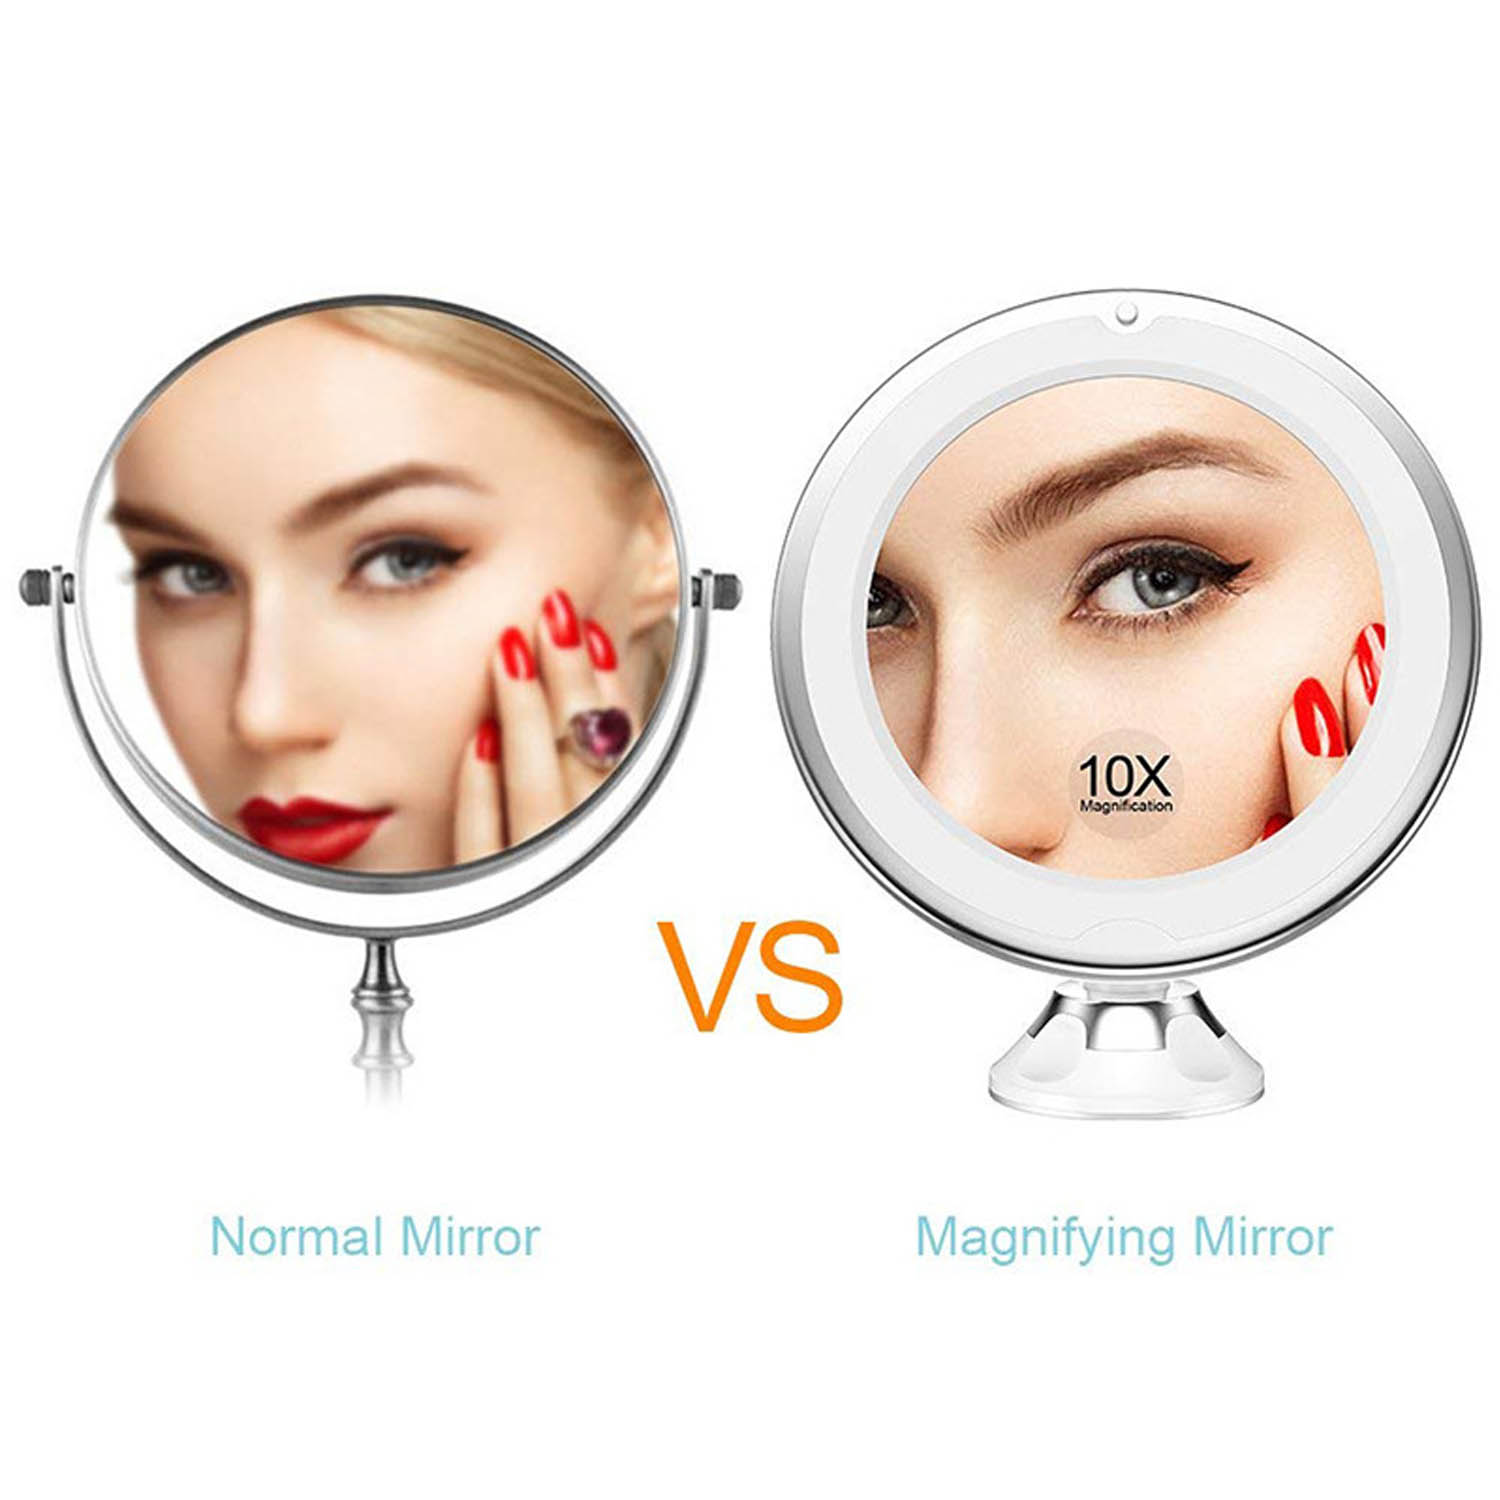 360 Degree Rotation LED 10x Magnification Makeup Mirror with Suction Cup for Bedroom Bathroom Dressing Table Makeup Room 4